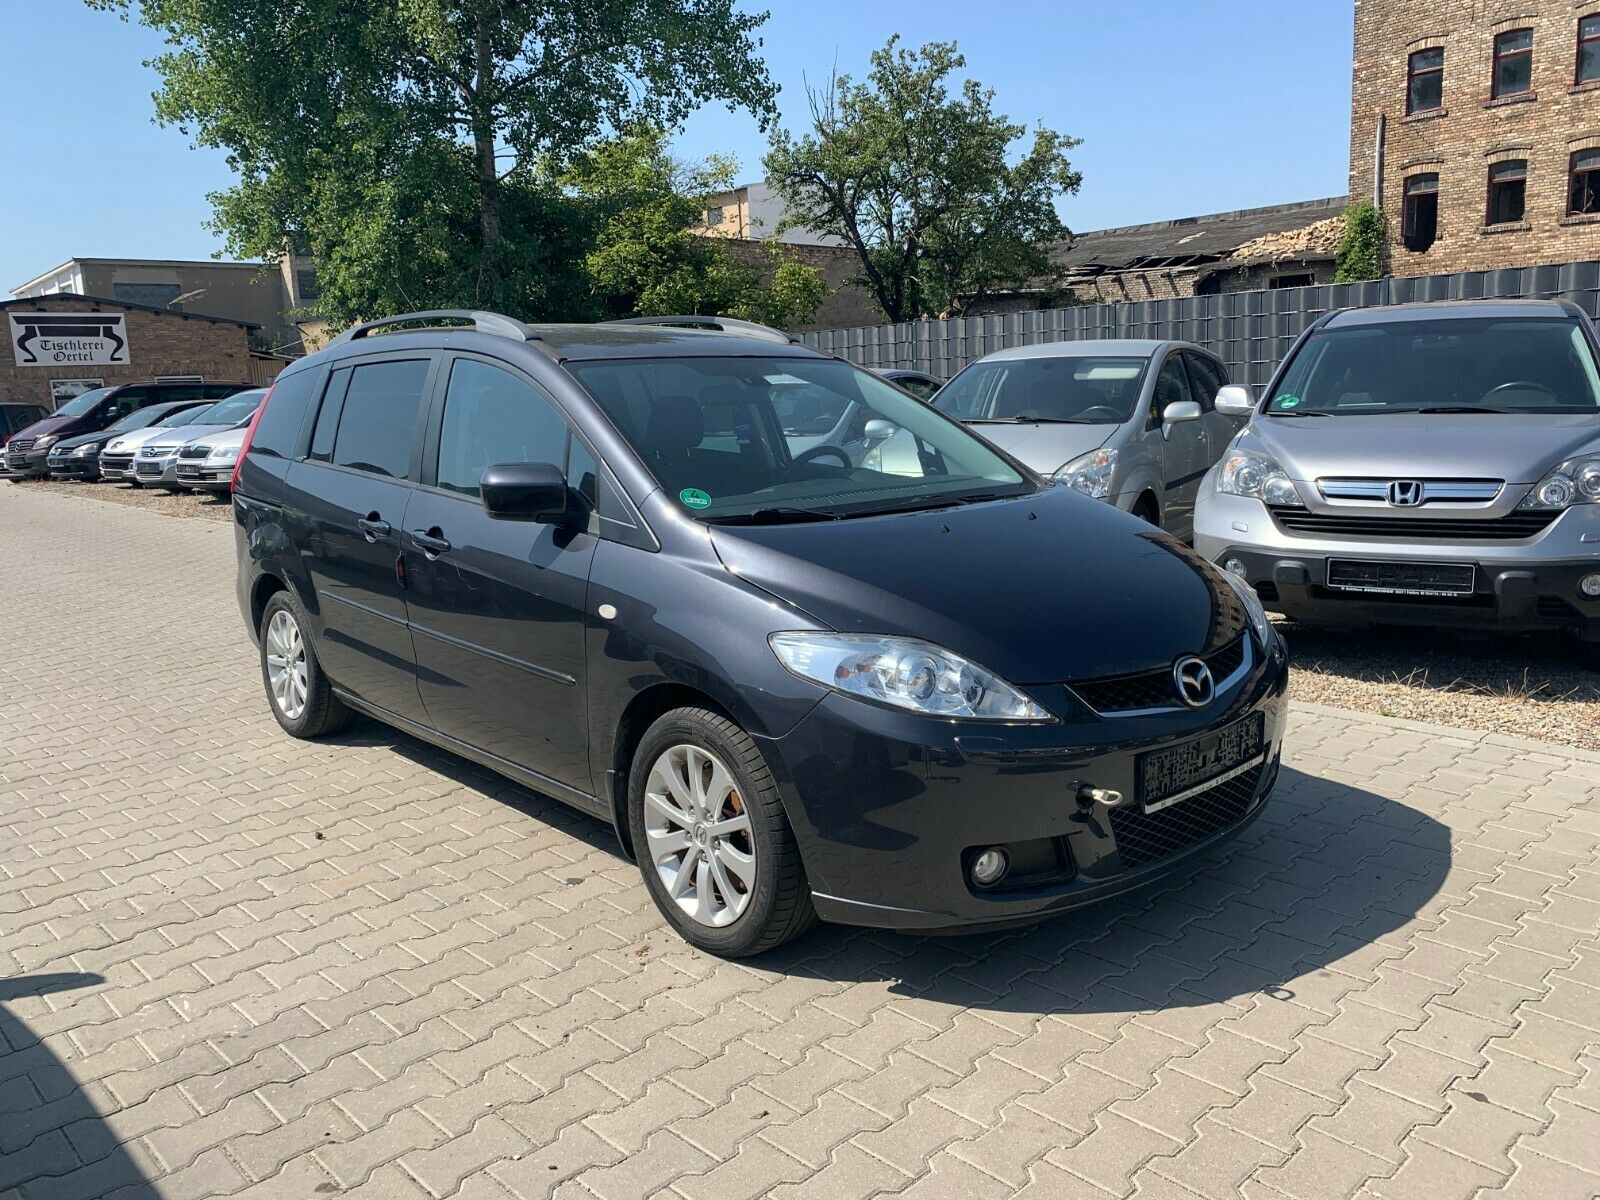 MAZDA 5 2.0 CD 105kW Exclusive*Xenon